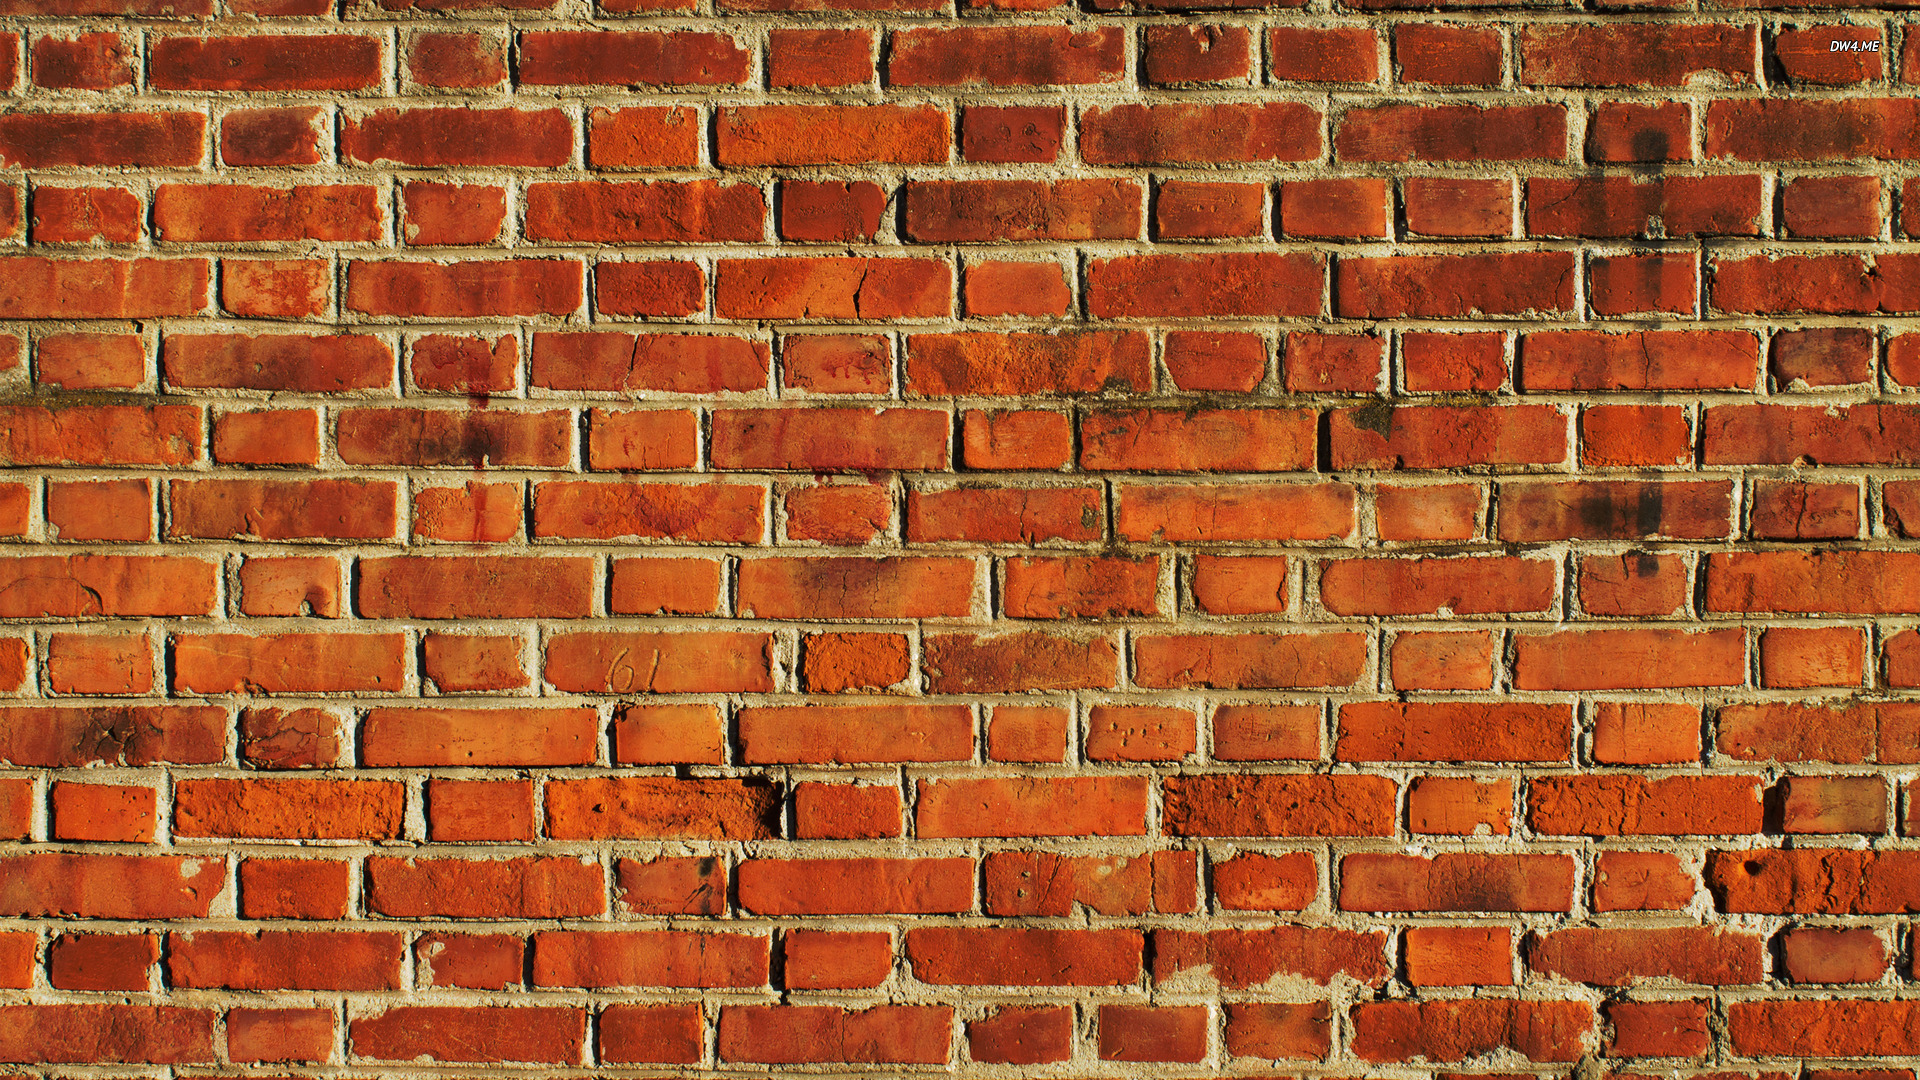 Brick Wall Wallpaper   Photography Wallpapers    817